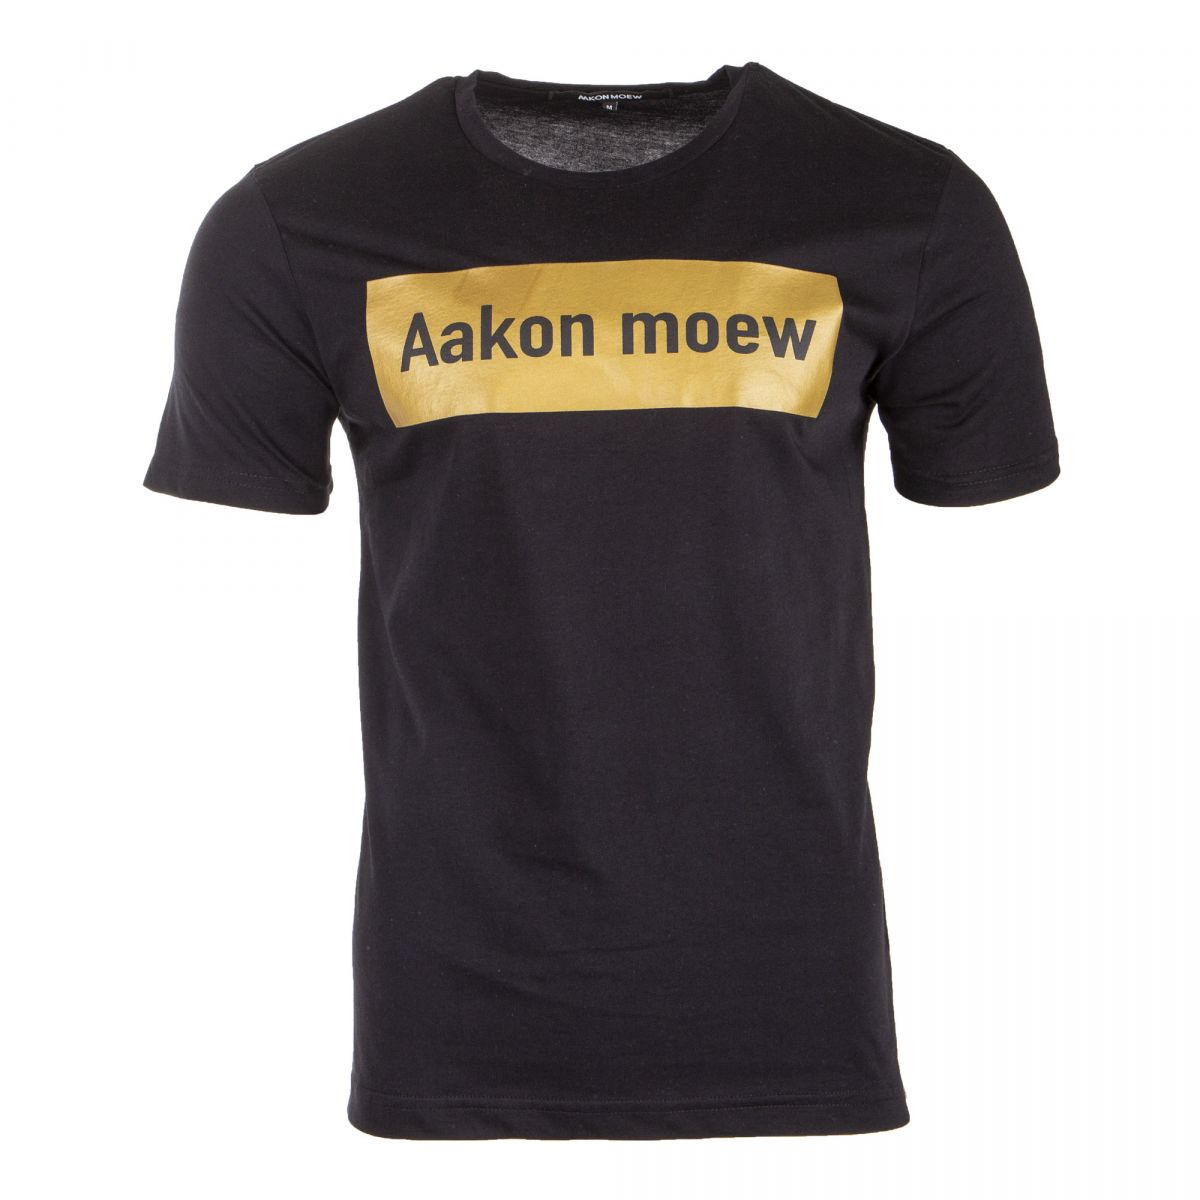 tee shirt noir slogan dor aakon moew prix d griff. Black Bedroom Furniture Sets. Home Design Ideas